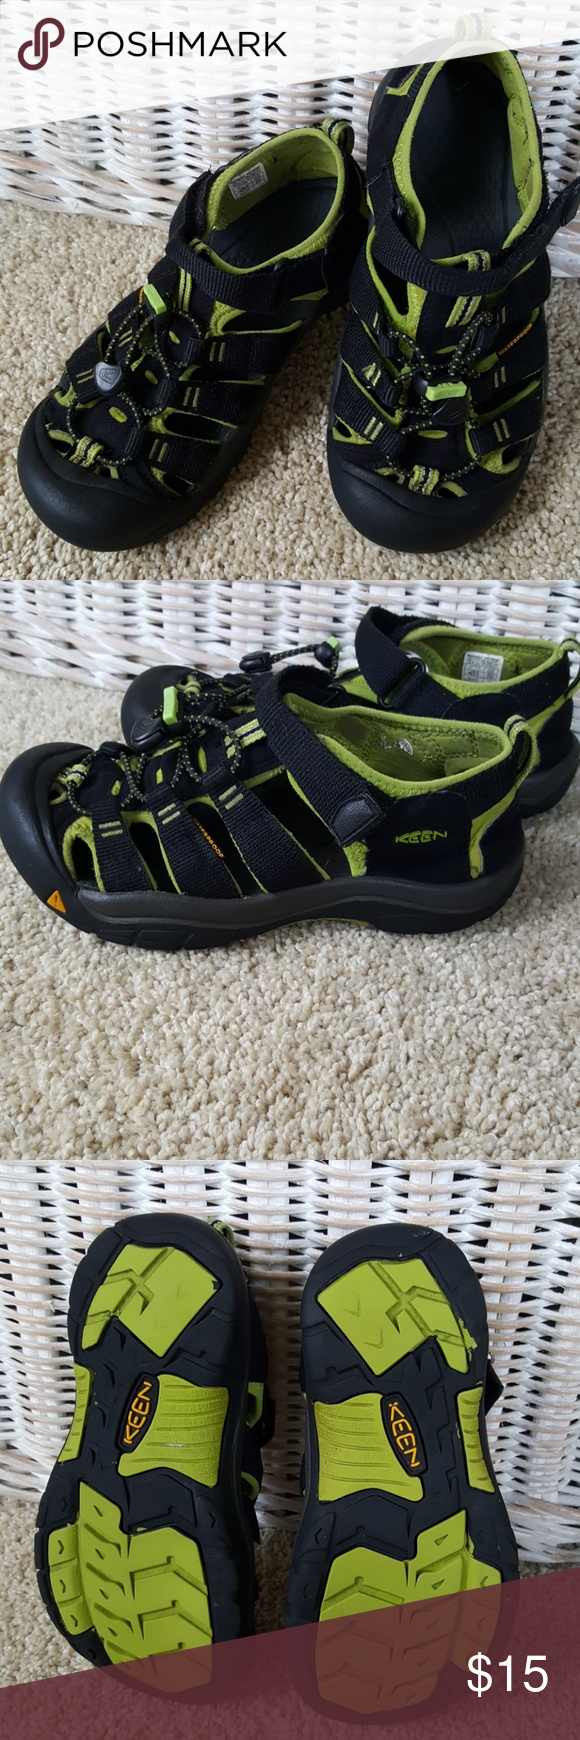 Keen Waterproof Sandals Size 3/4 A lot of wear left in these boys Keen sandals. Size tag is missing but are approximately a Boys 3-4. Great for summer. From a smoke-free home. Keen Shoes Sandals & Flip Flops